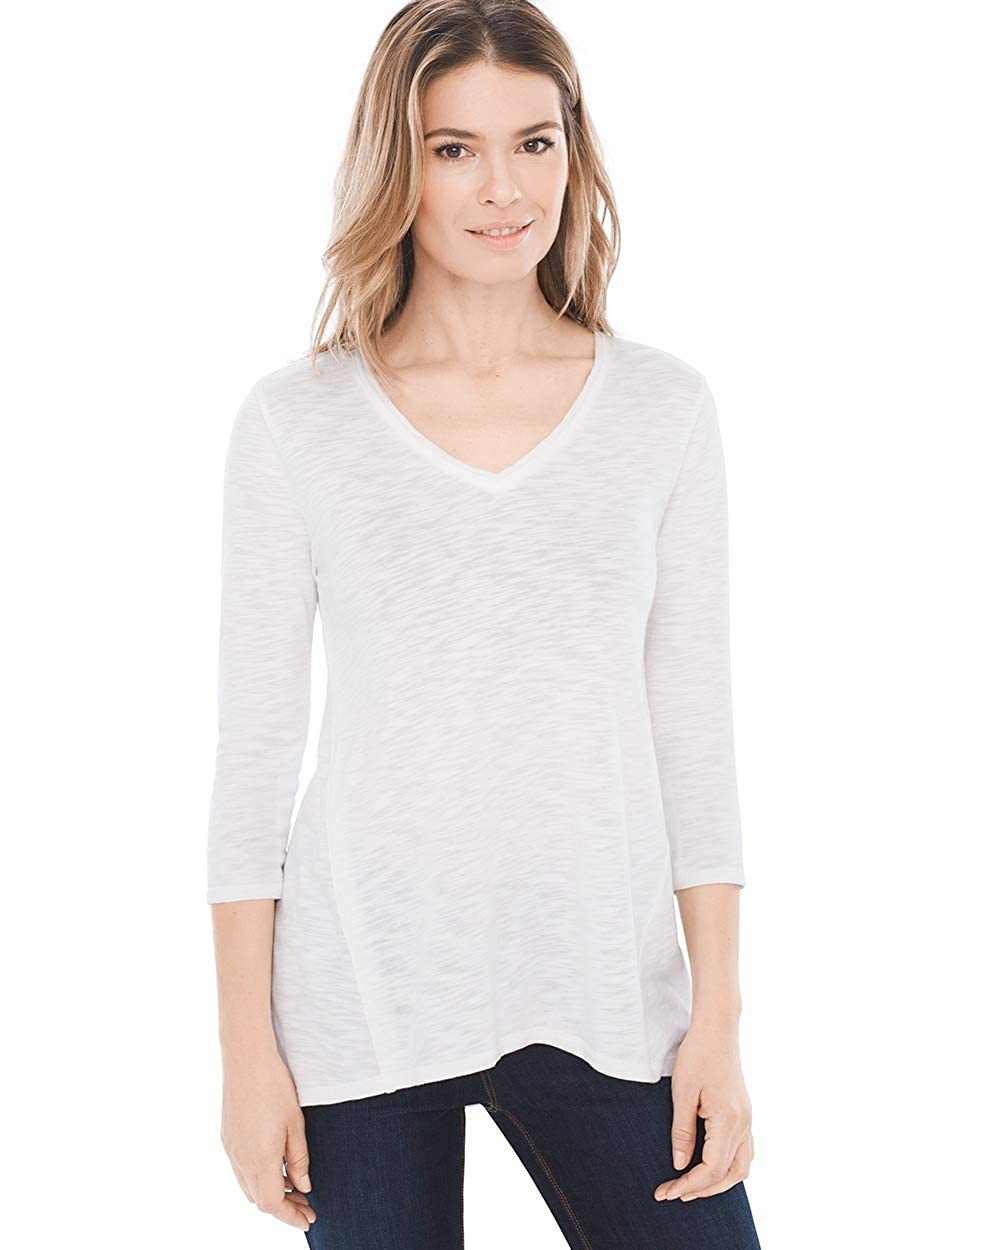 Chico's Women's V-Neck Slub 3/4 Sleeve Tee Shirt